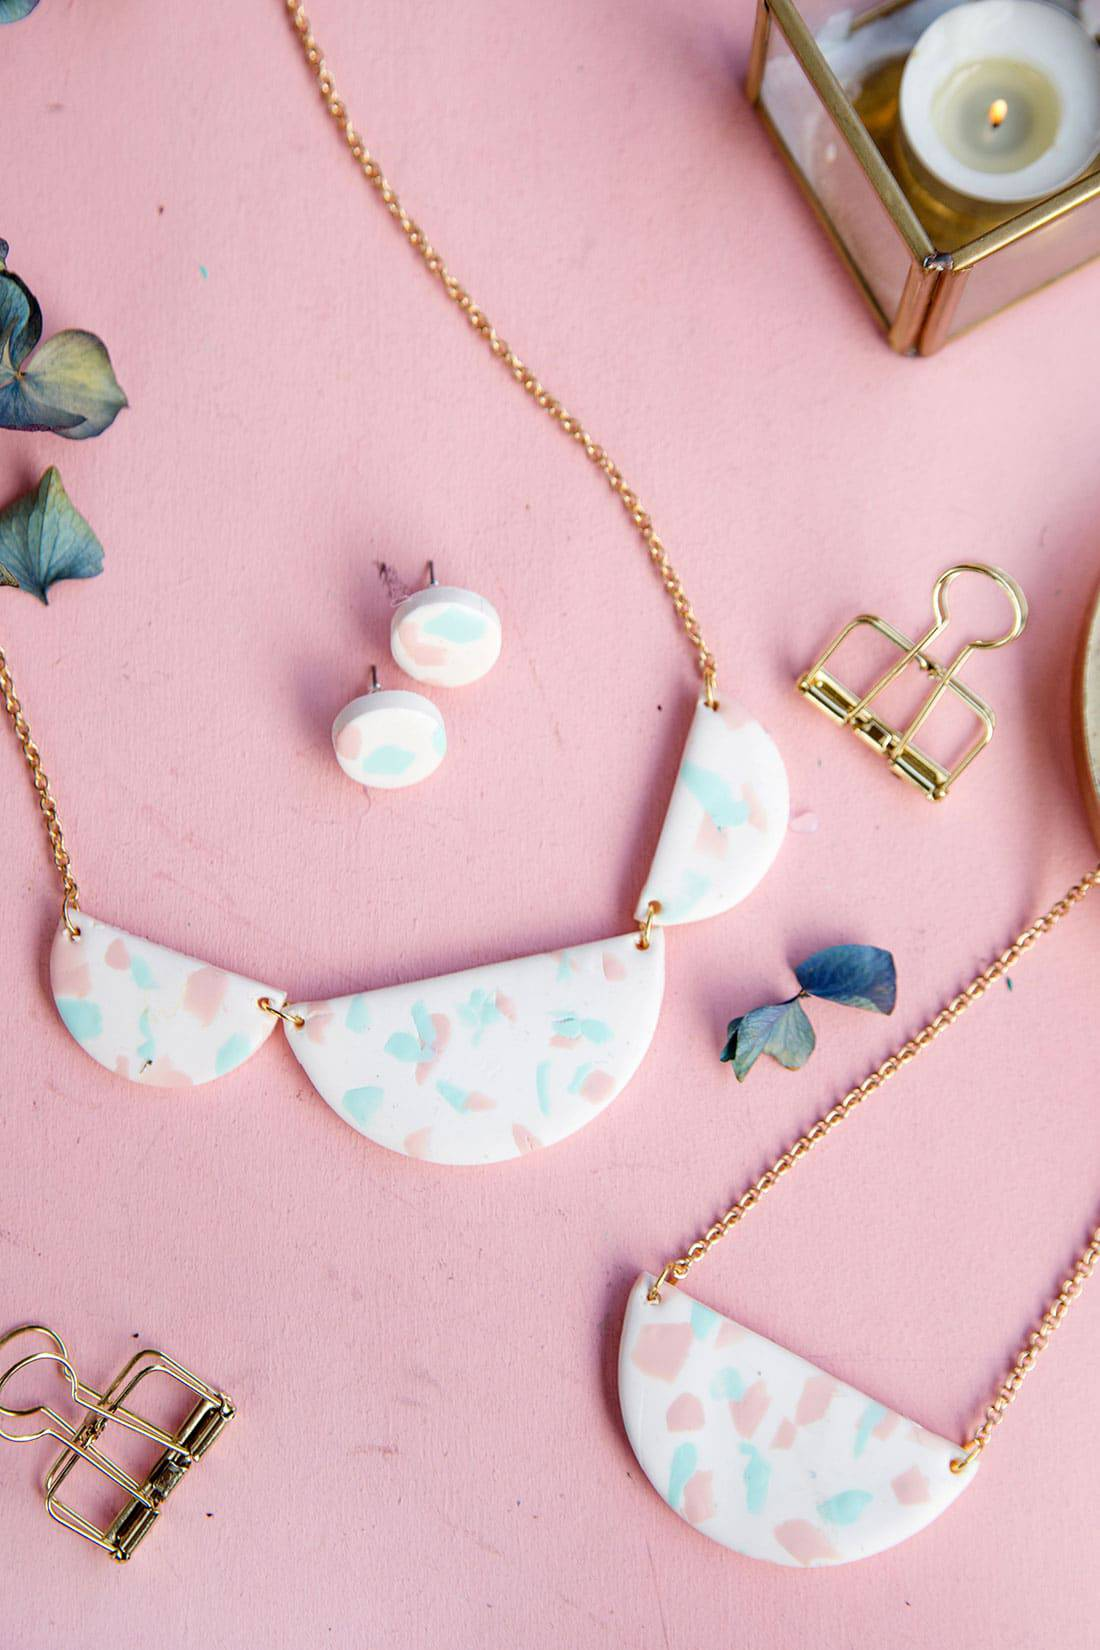 Your friends will all be begging to know where you bought this Terrazzo chain - and will be shocked when you tell them you made it yourself!